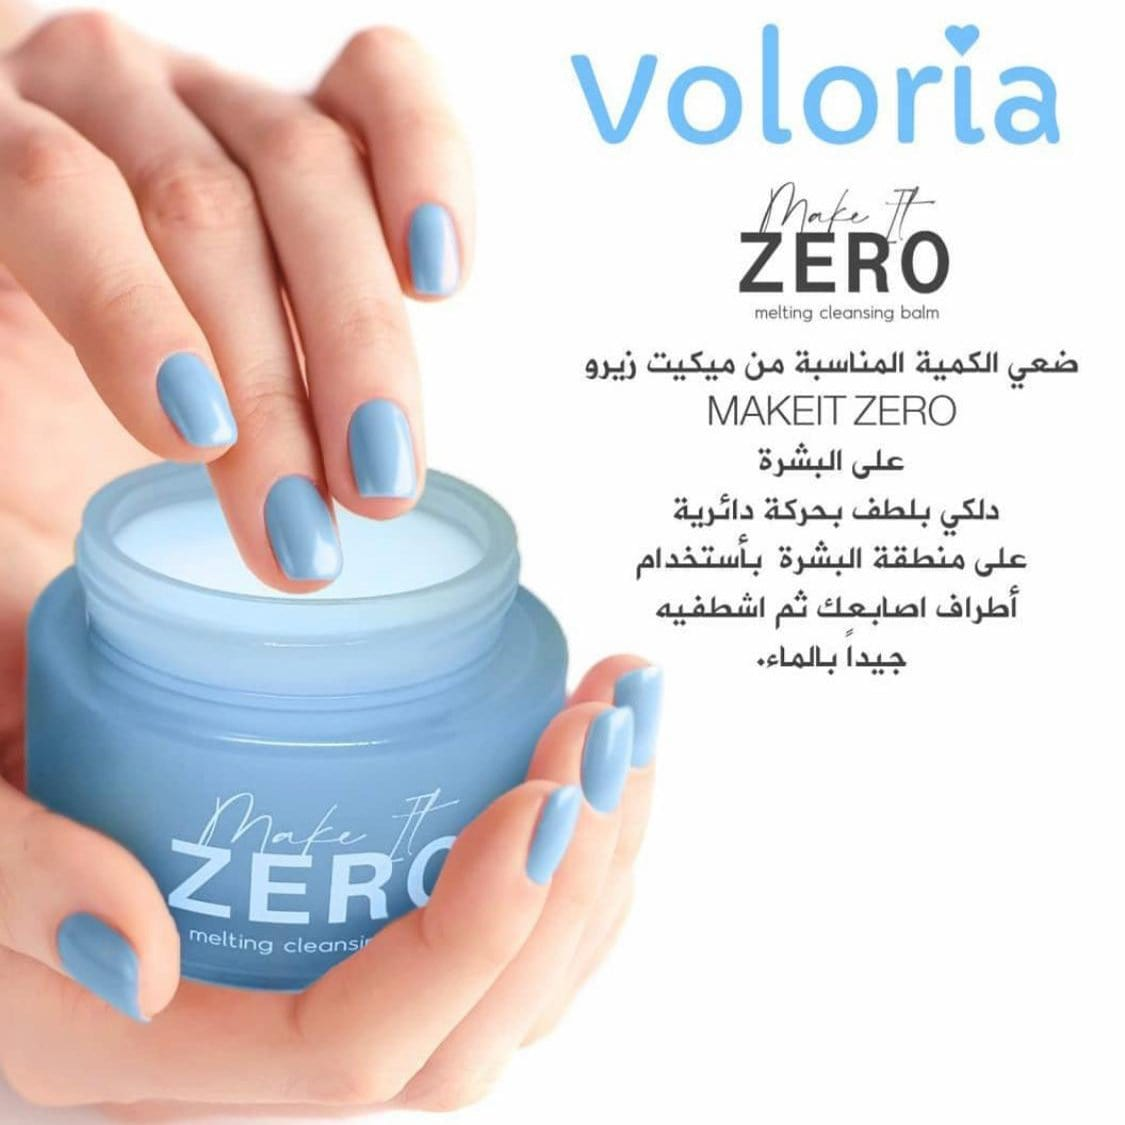 Voloria- Make It Zero Melting Cleansing Balm 100ml